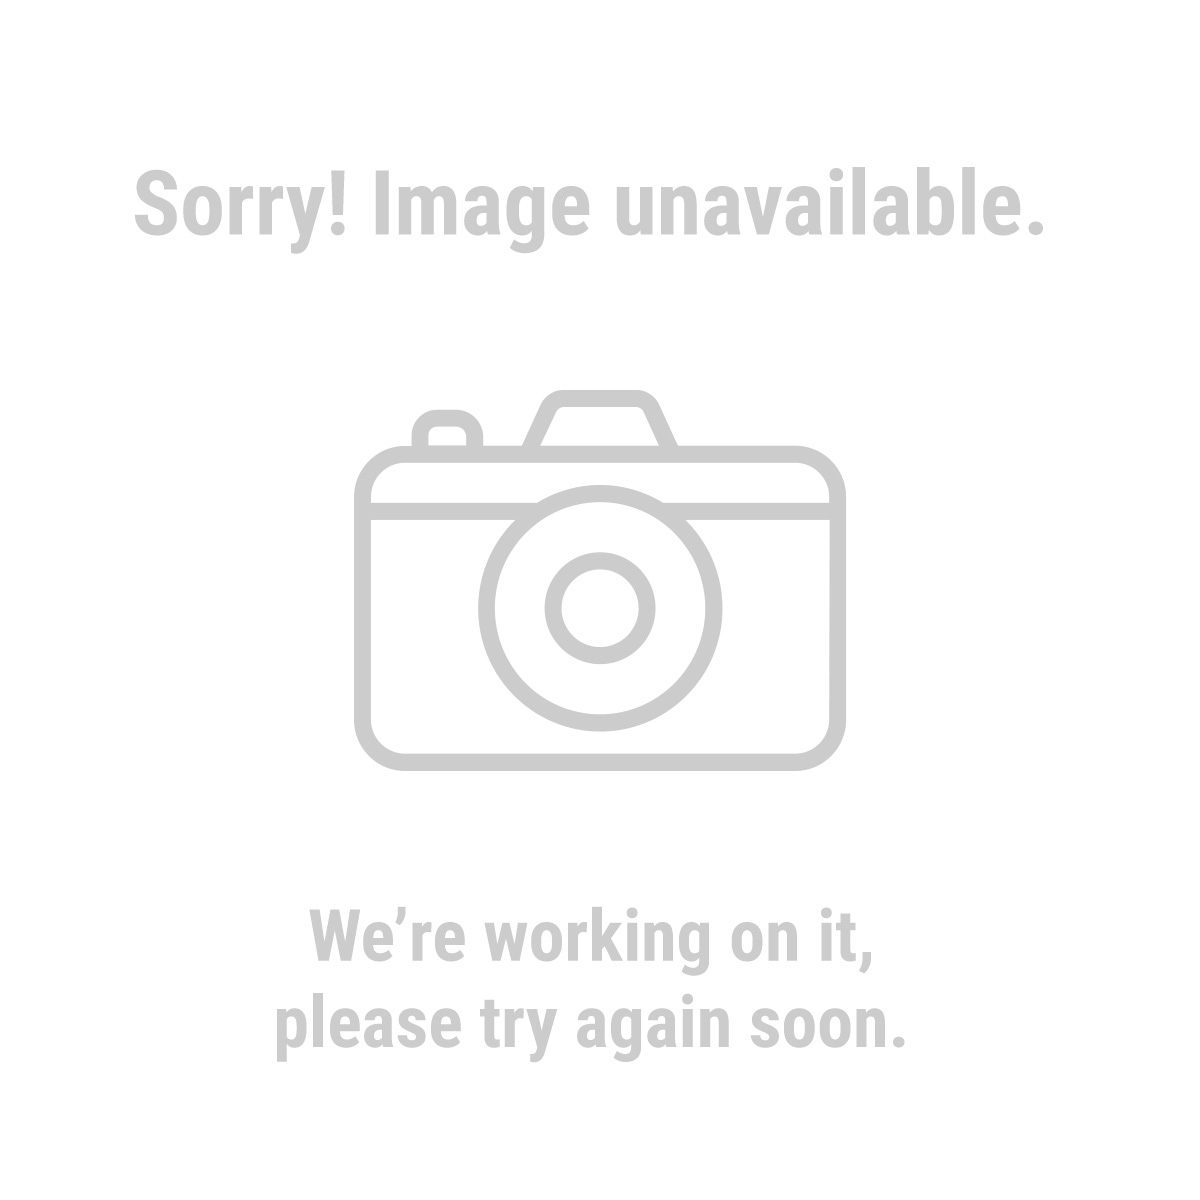 HARDY 99582 Riding/Stable Work Gloves, X-Large